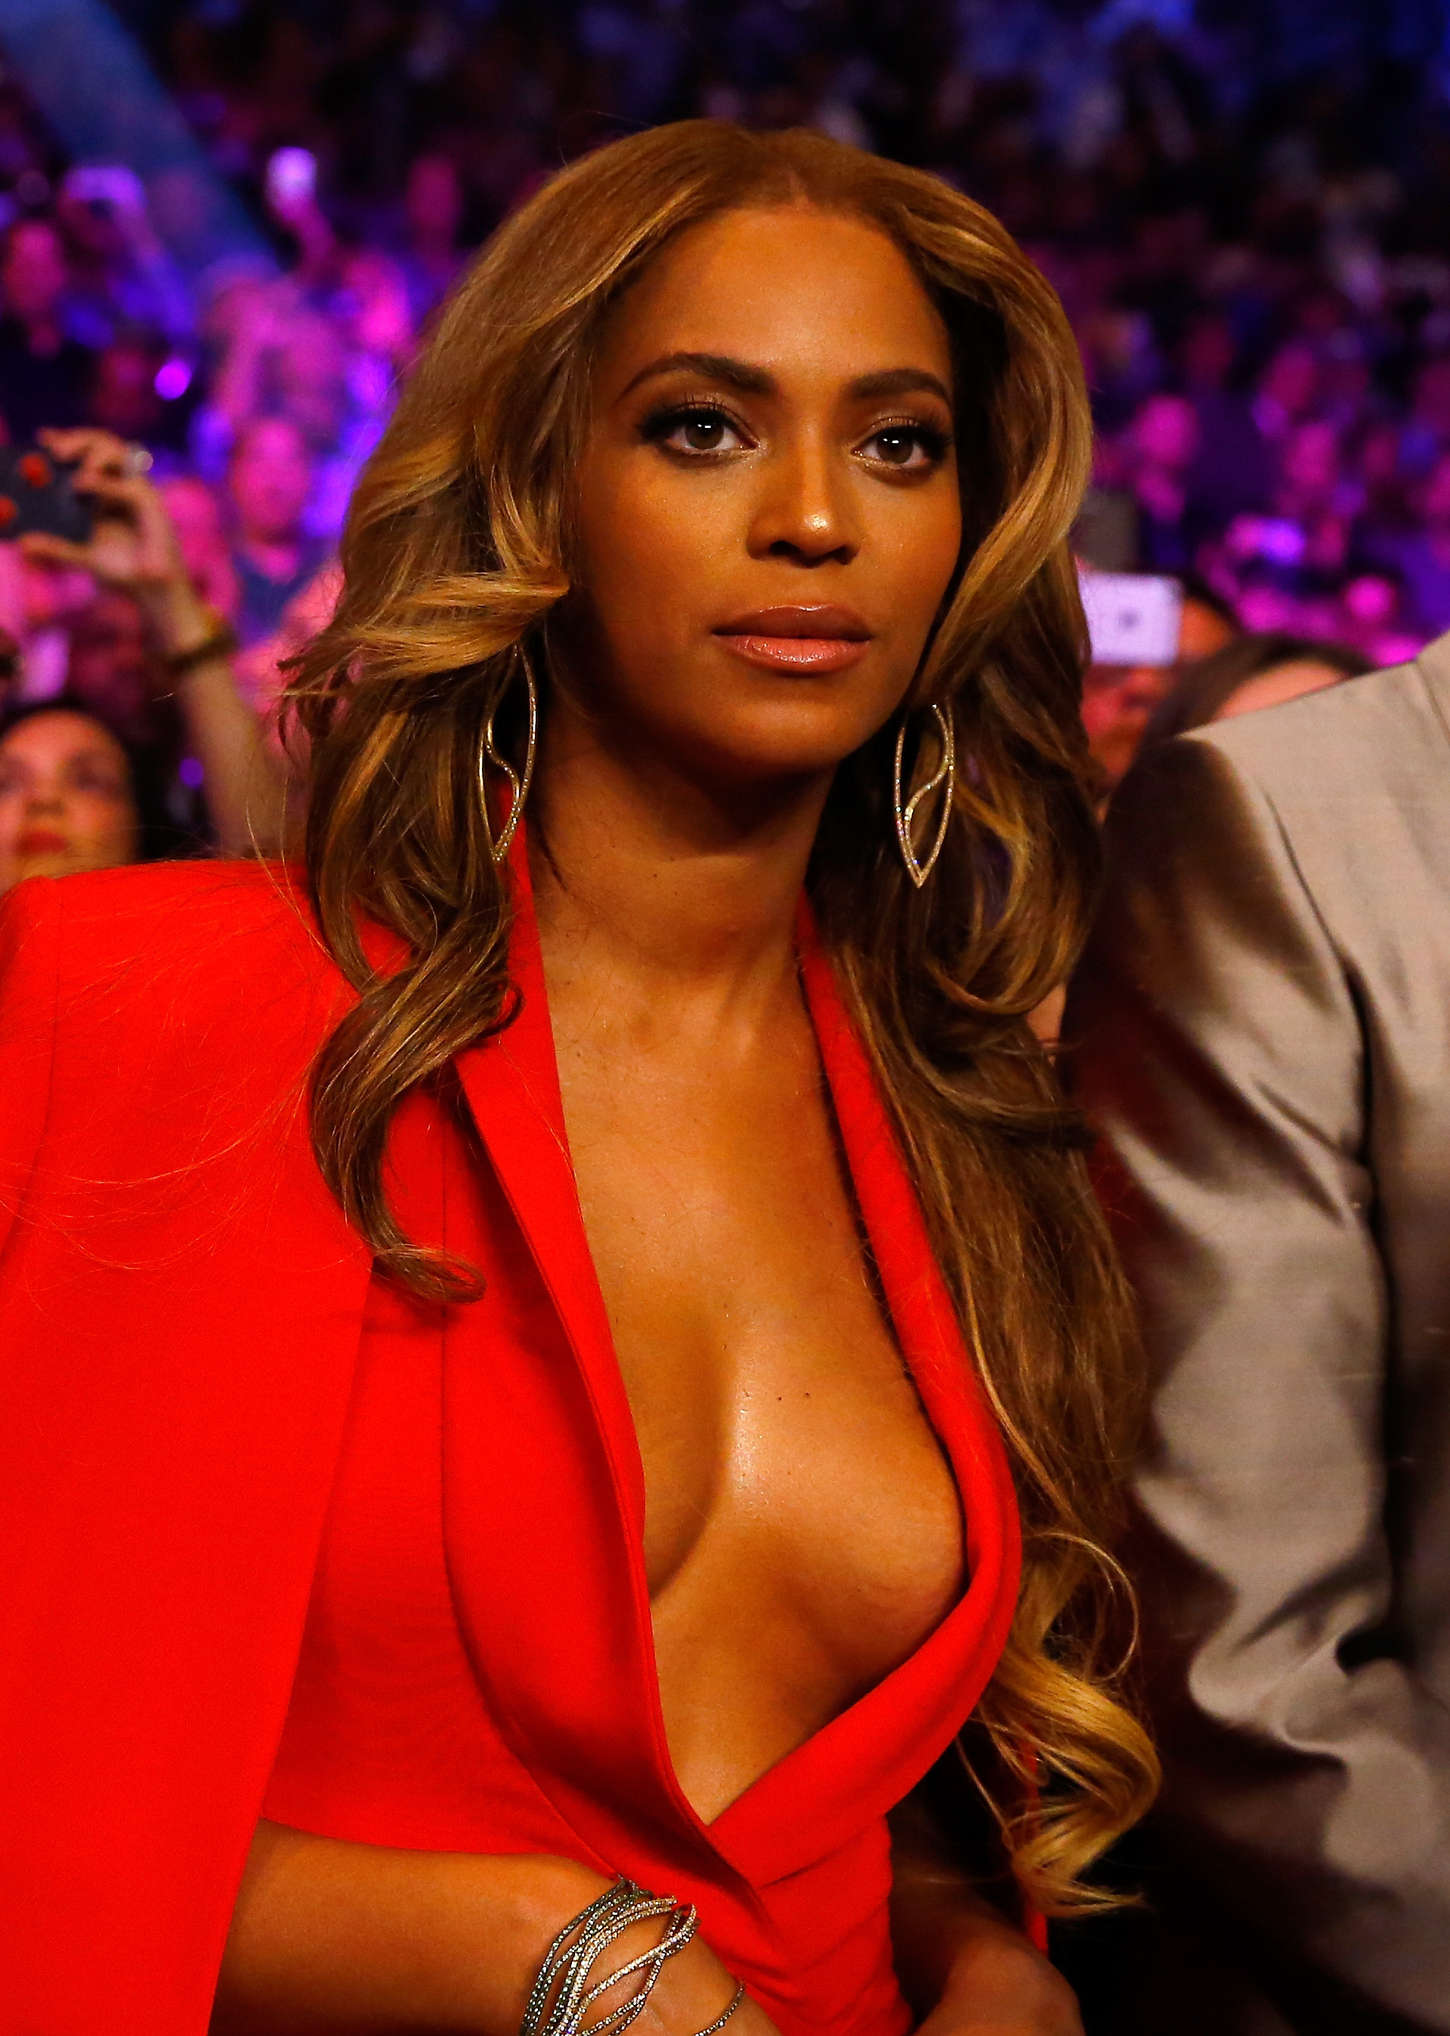 Beyonce Floyd Mayweather Vs Manny Pacquiao Fight In Las